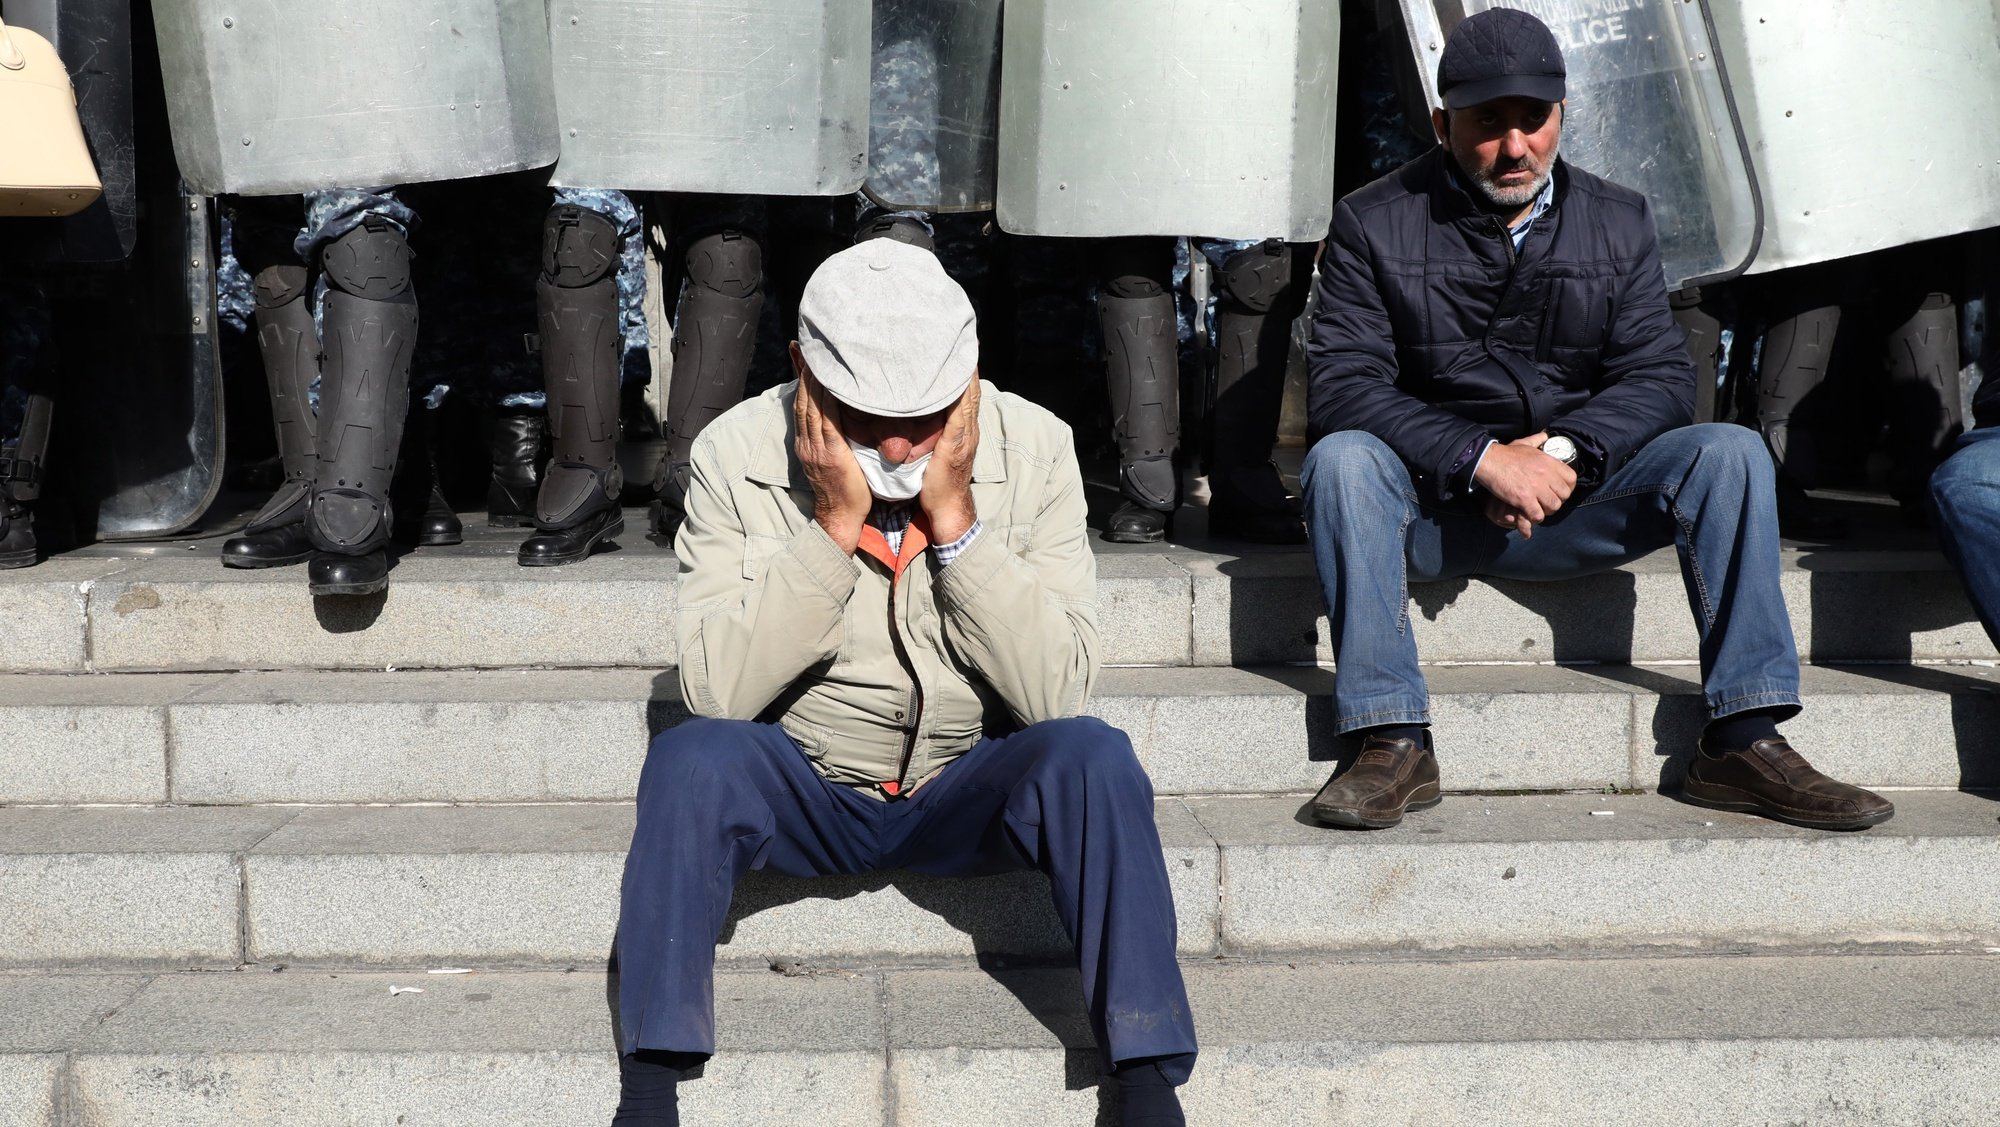 epa08813457 Armenian men sit in front of a police cordon during an opposition rally in Yerevan, Armenia, 11 November 2020. Protesters demand the resignation of Armenian Prime Minister Nikol Pashinyan and his government. The unrest  and protests erupted in Yerevan on 10 November 2020 after Armenian Prime Minister and Presidents of Azerbaijan and Russia signed a trilateral statement announcing the halt of ceasefire and all military operations in the Nagorno-Karabakh conflict zone.  EPA/STEPAN POGHOSYAN / PHOTOLURE MANDATORY CREDIT